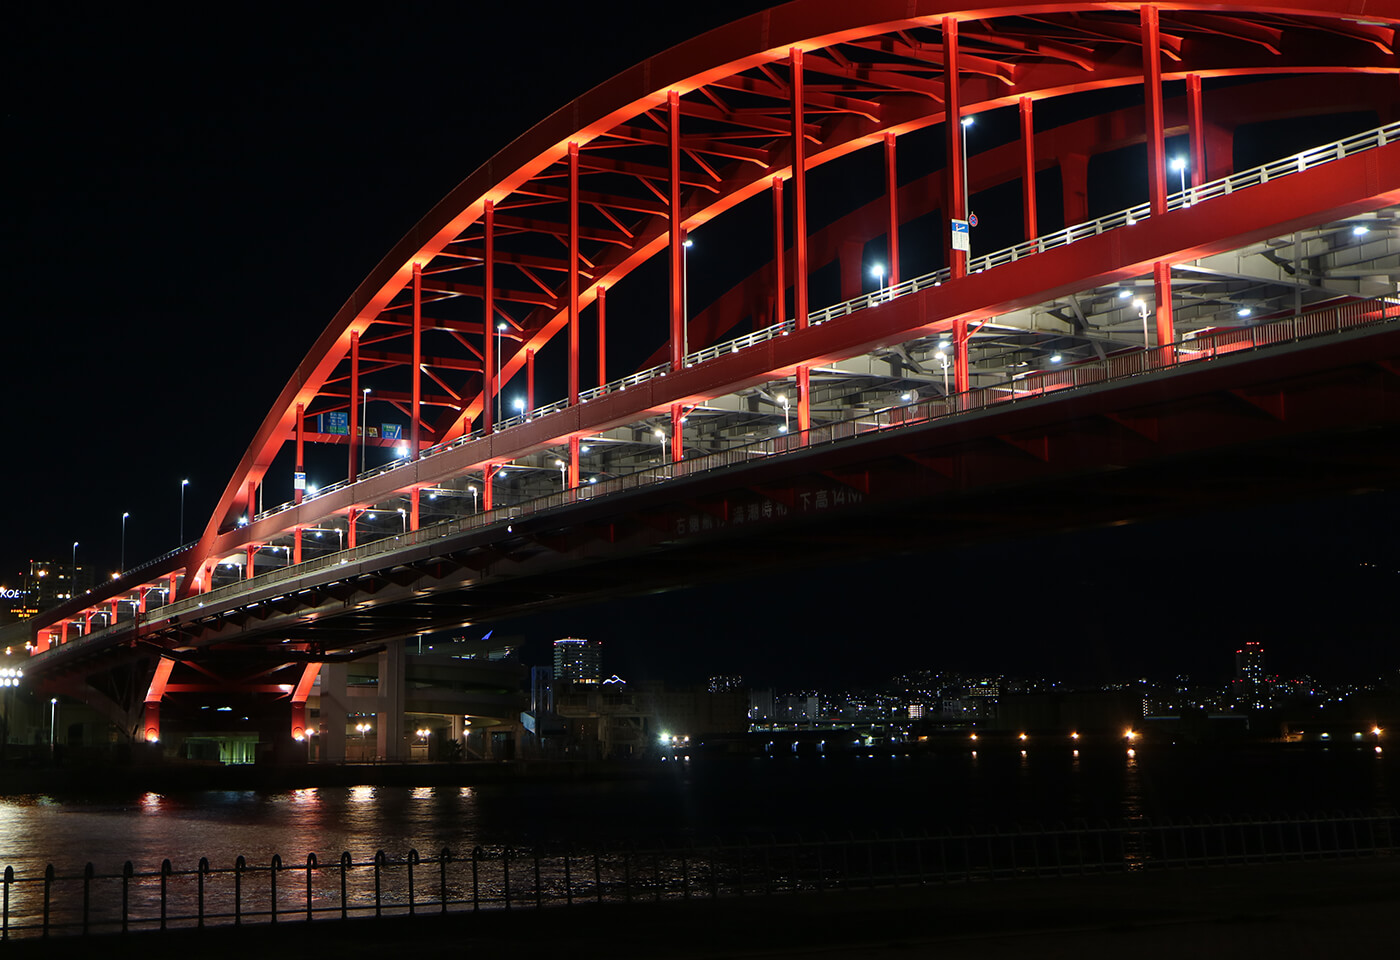 Bridge covered in red lighting at night